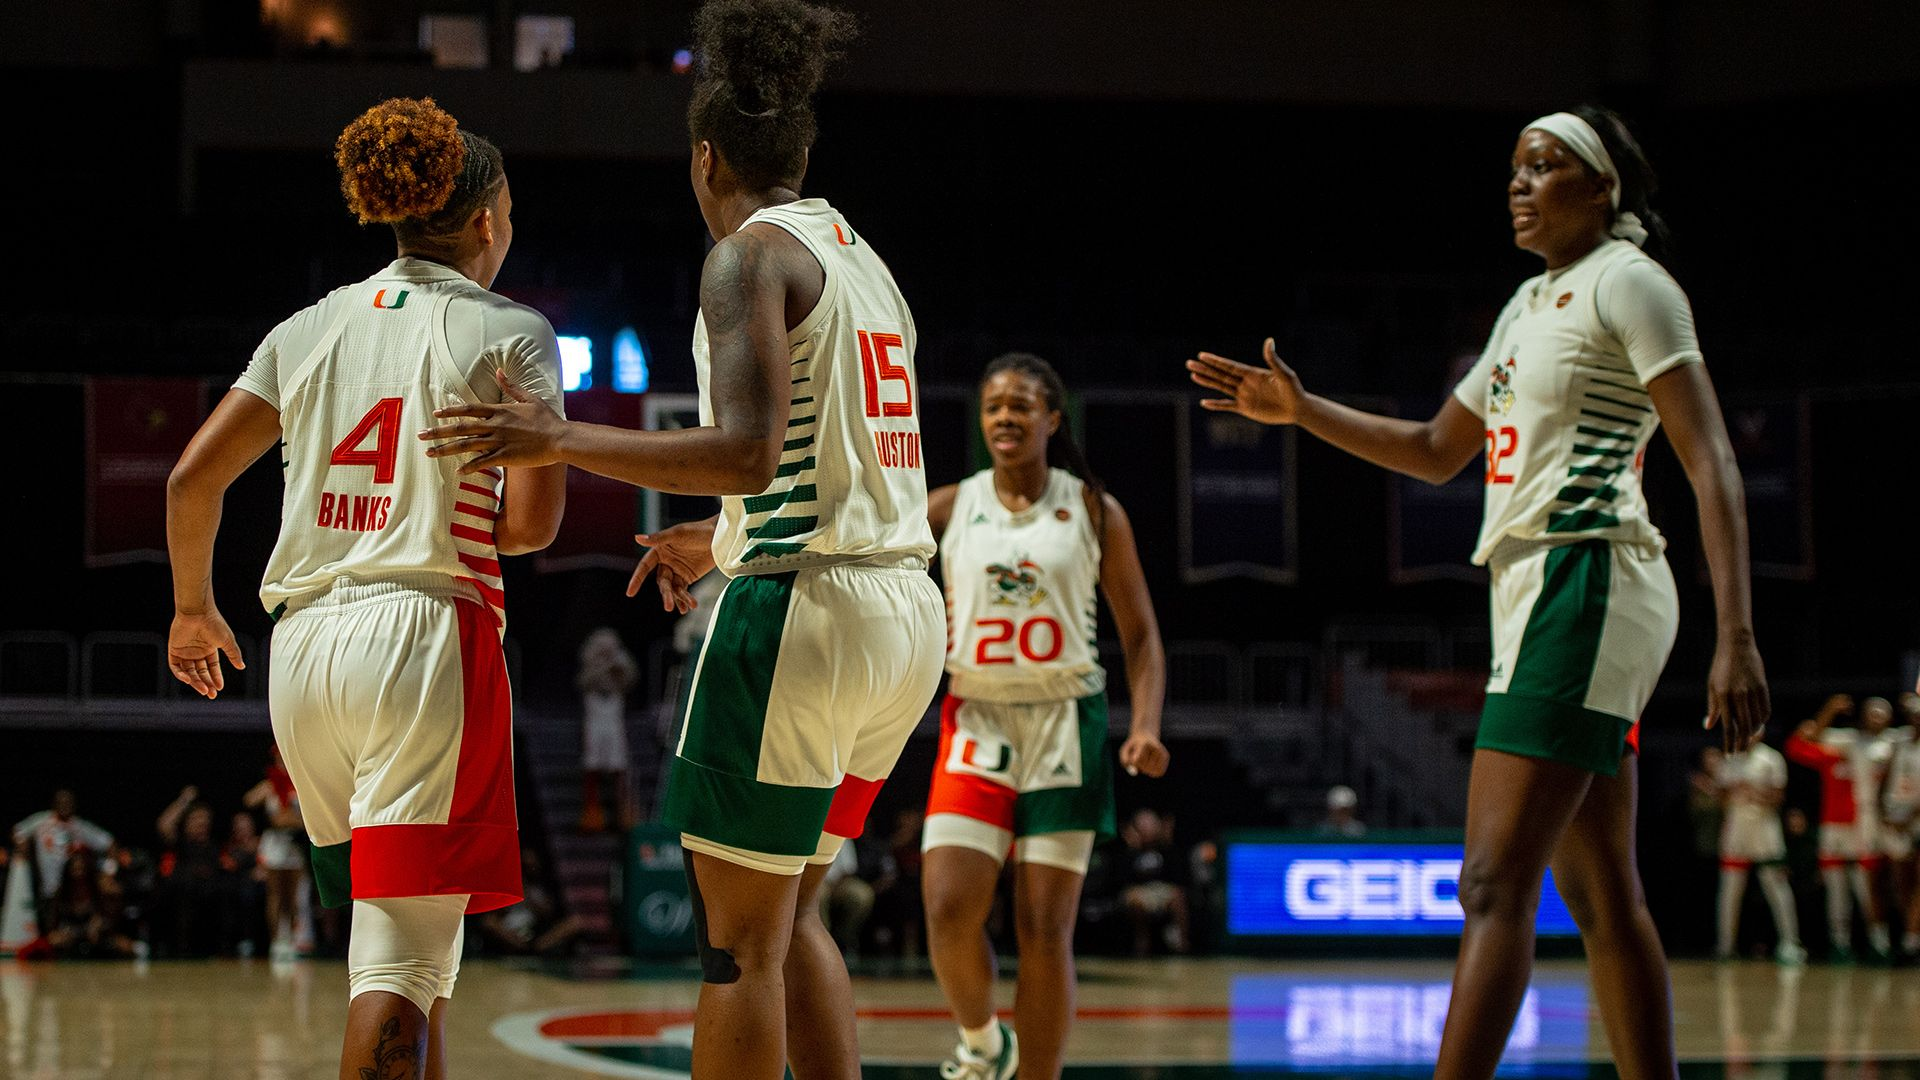 Canes Tagged With First Home Loss of 2019-20